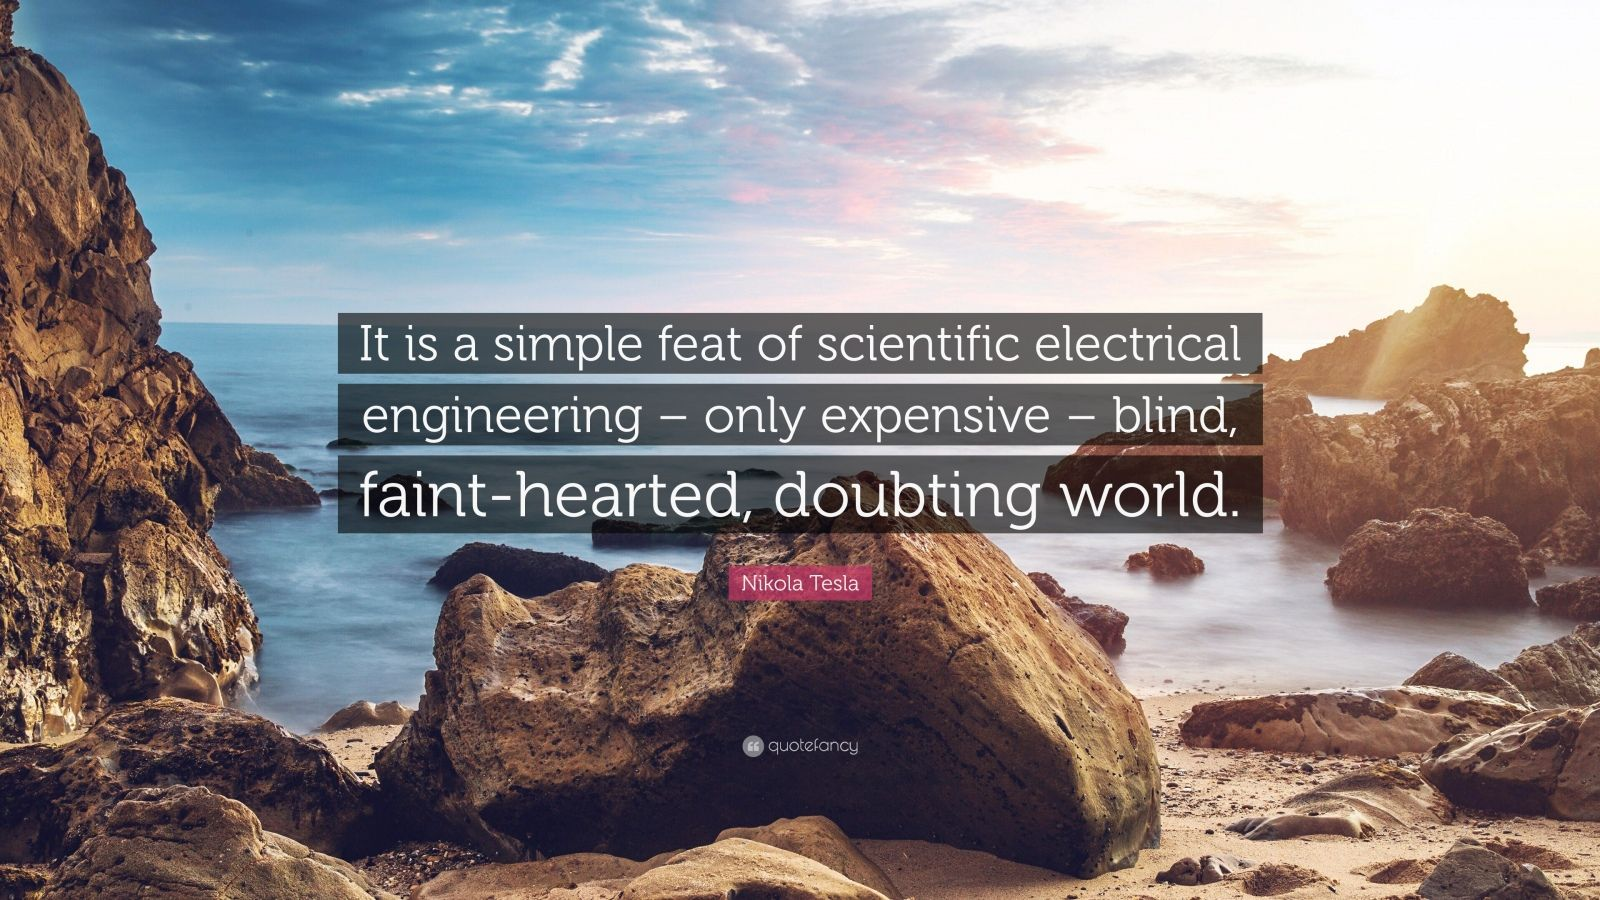 """Nikola Tesla Quote: """"It is a simple feat of scientific electrical engineering – only expensive – blind, faint-hearted, doubting world."""""""